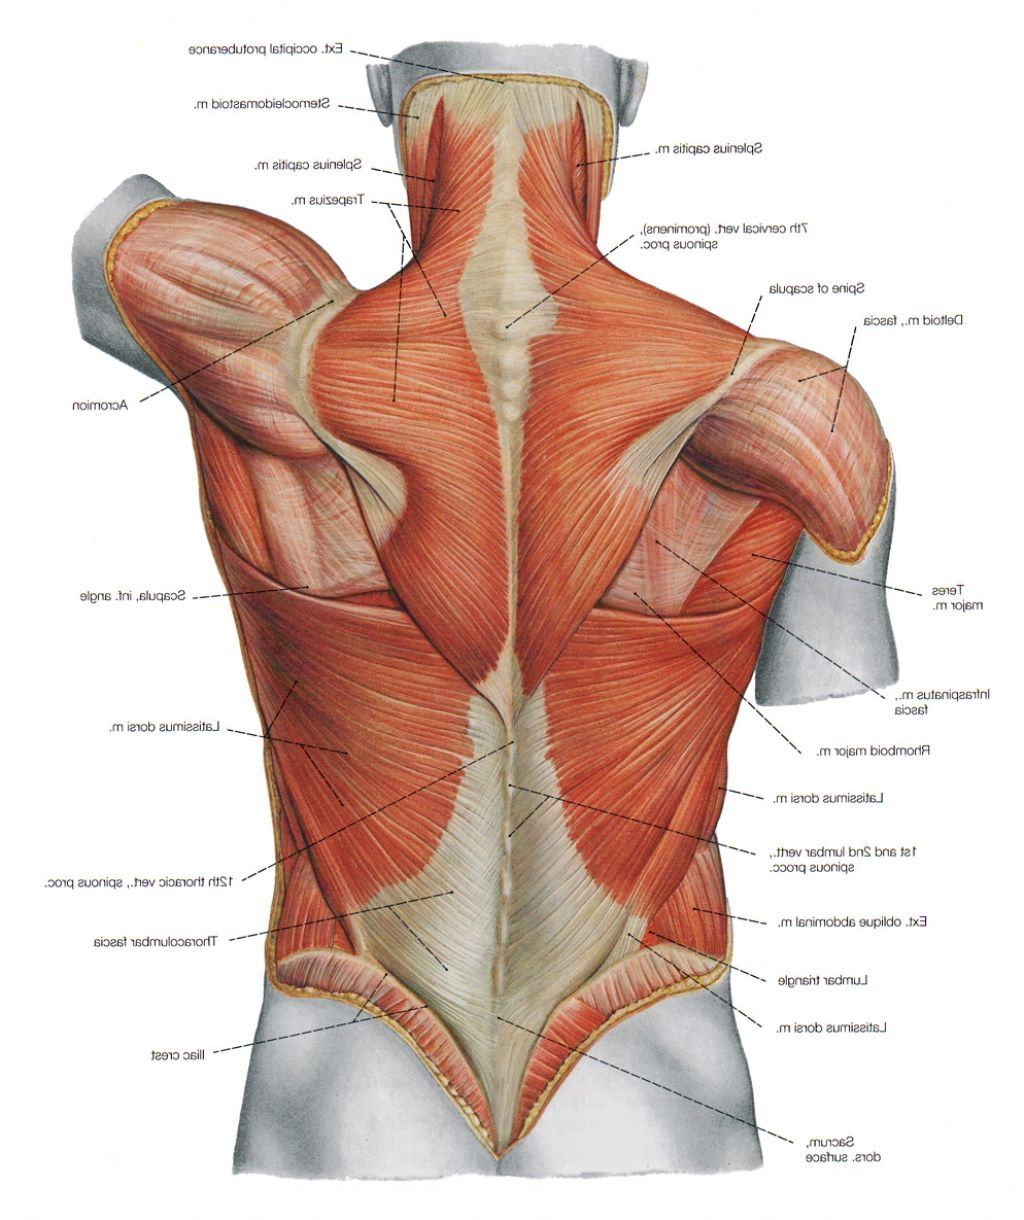 Diagram Back Muscles Upper Back Human Anatomy Diagram – Anatomy